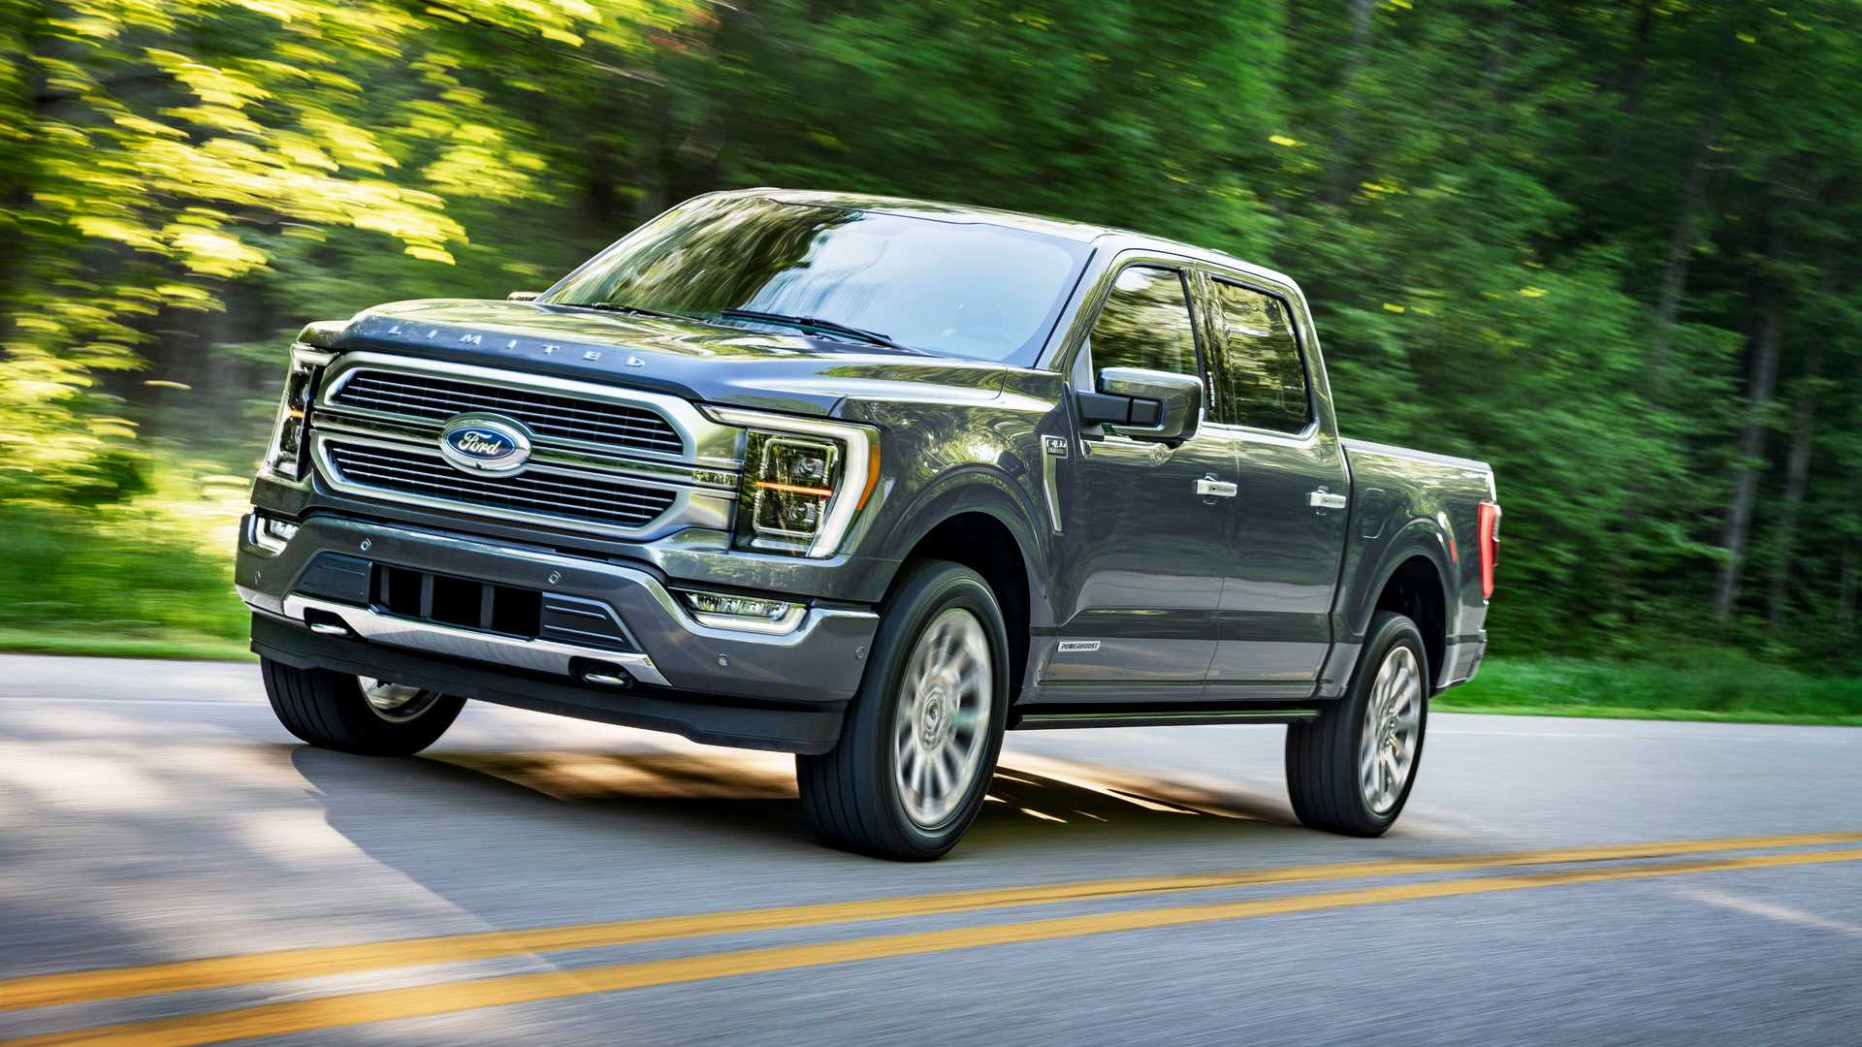 Pricing 2022 Ford F-150